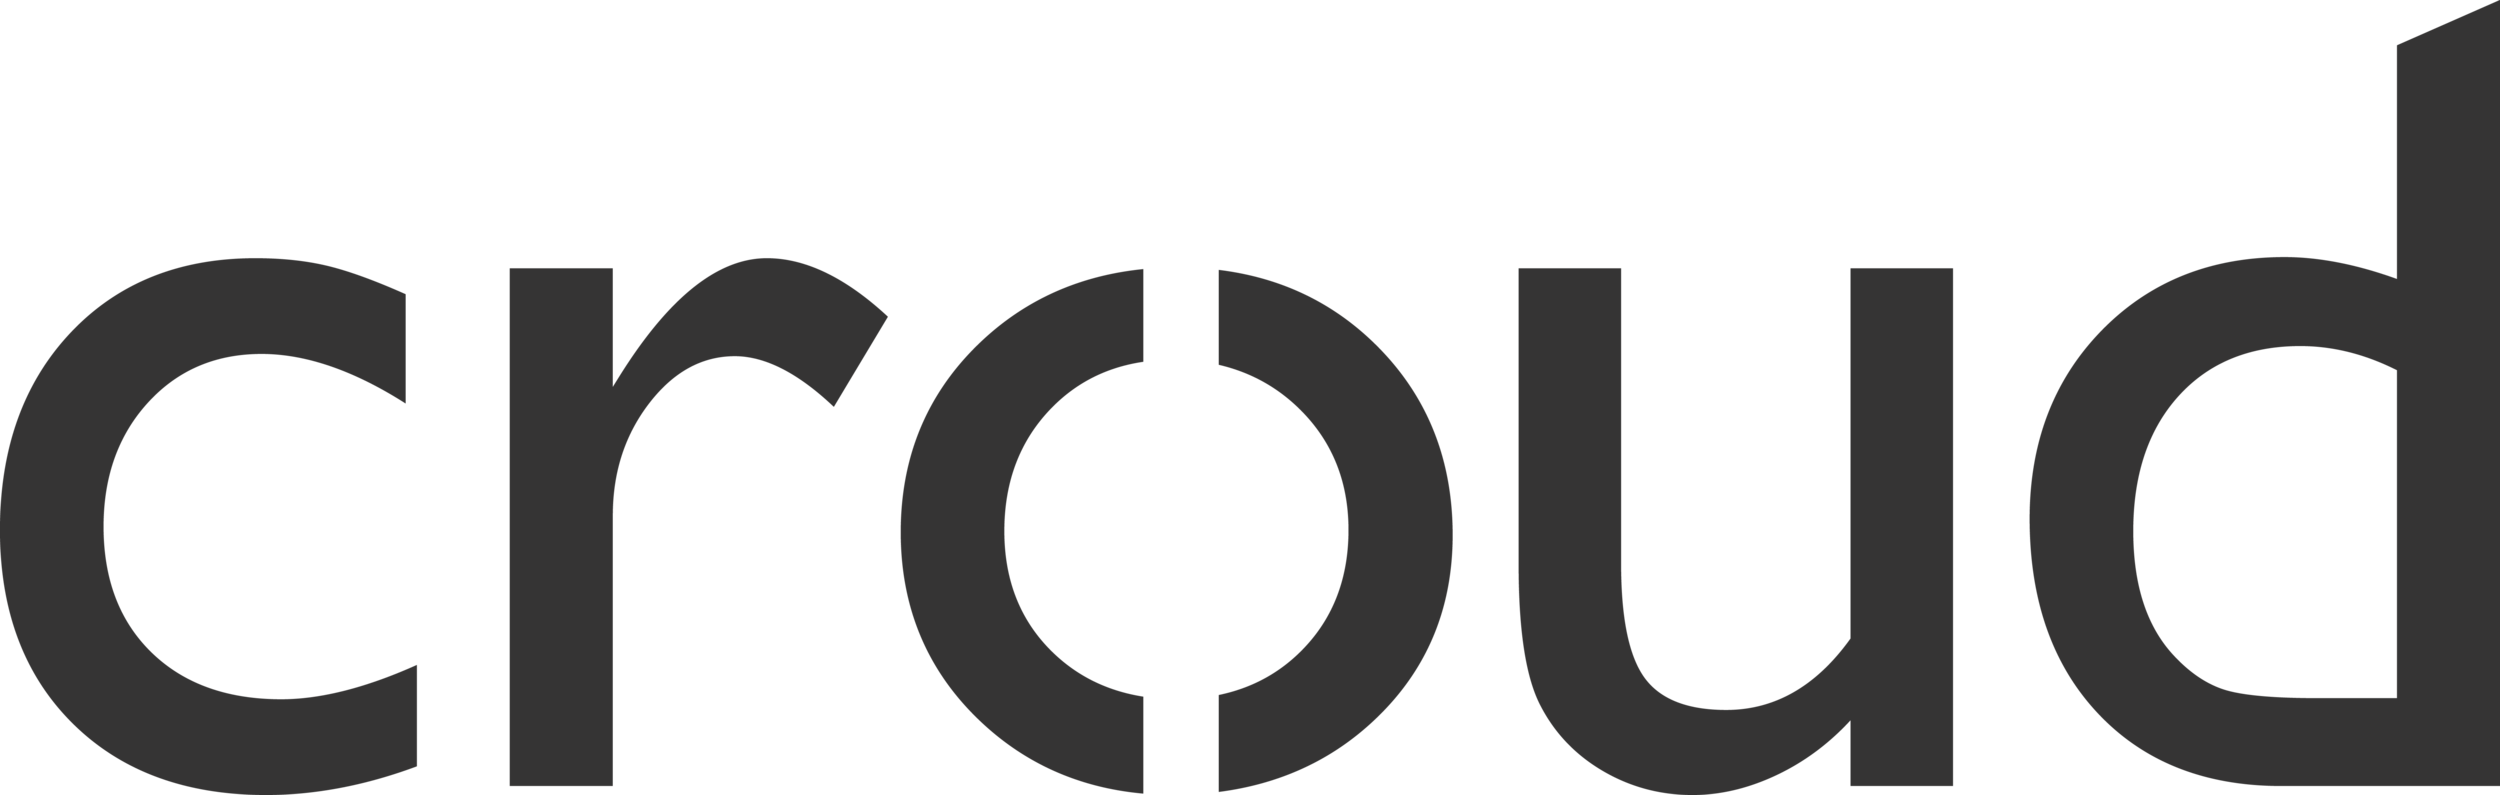 Croud_Logo_Black_Large.png